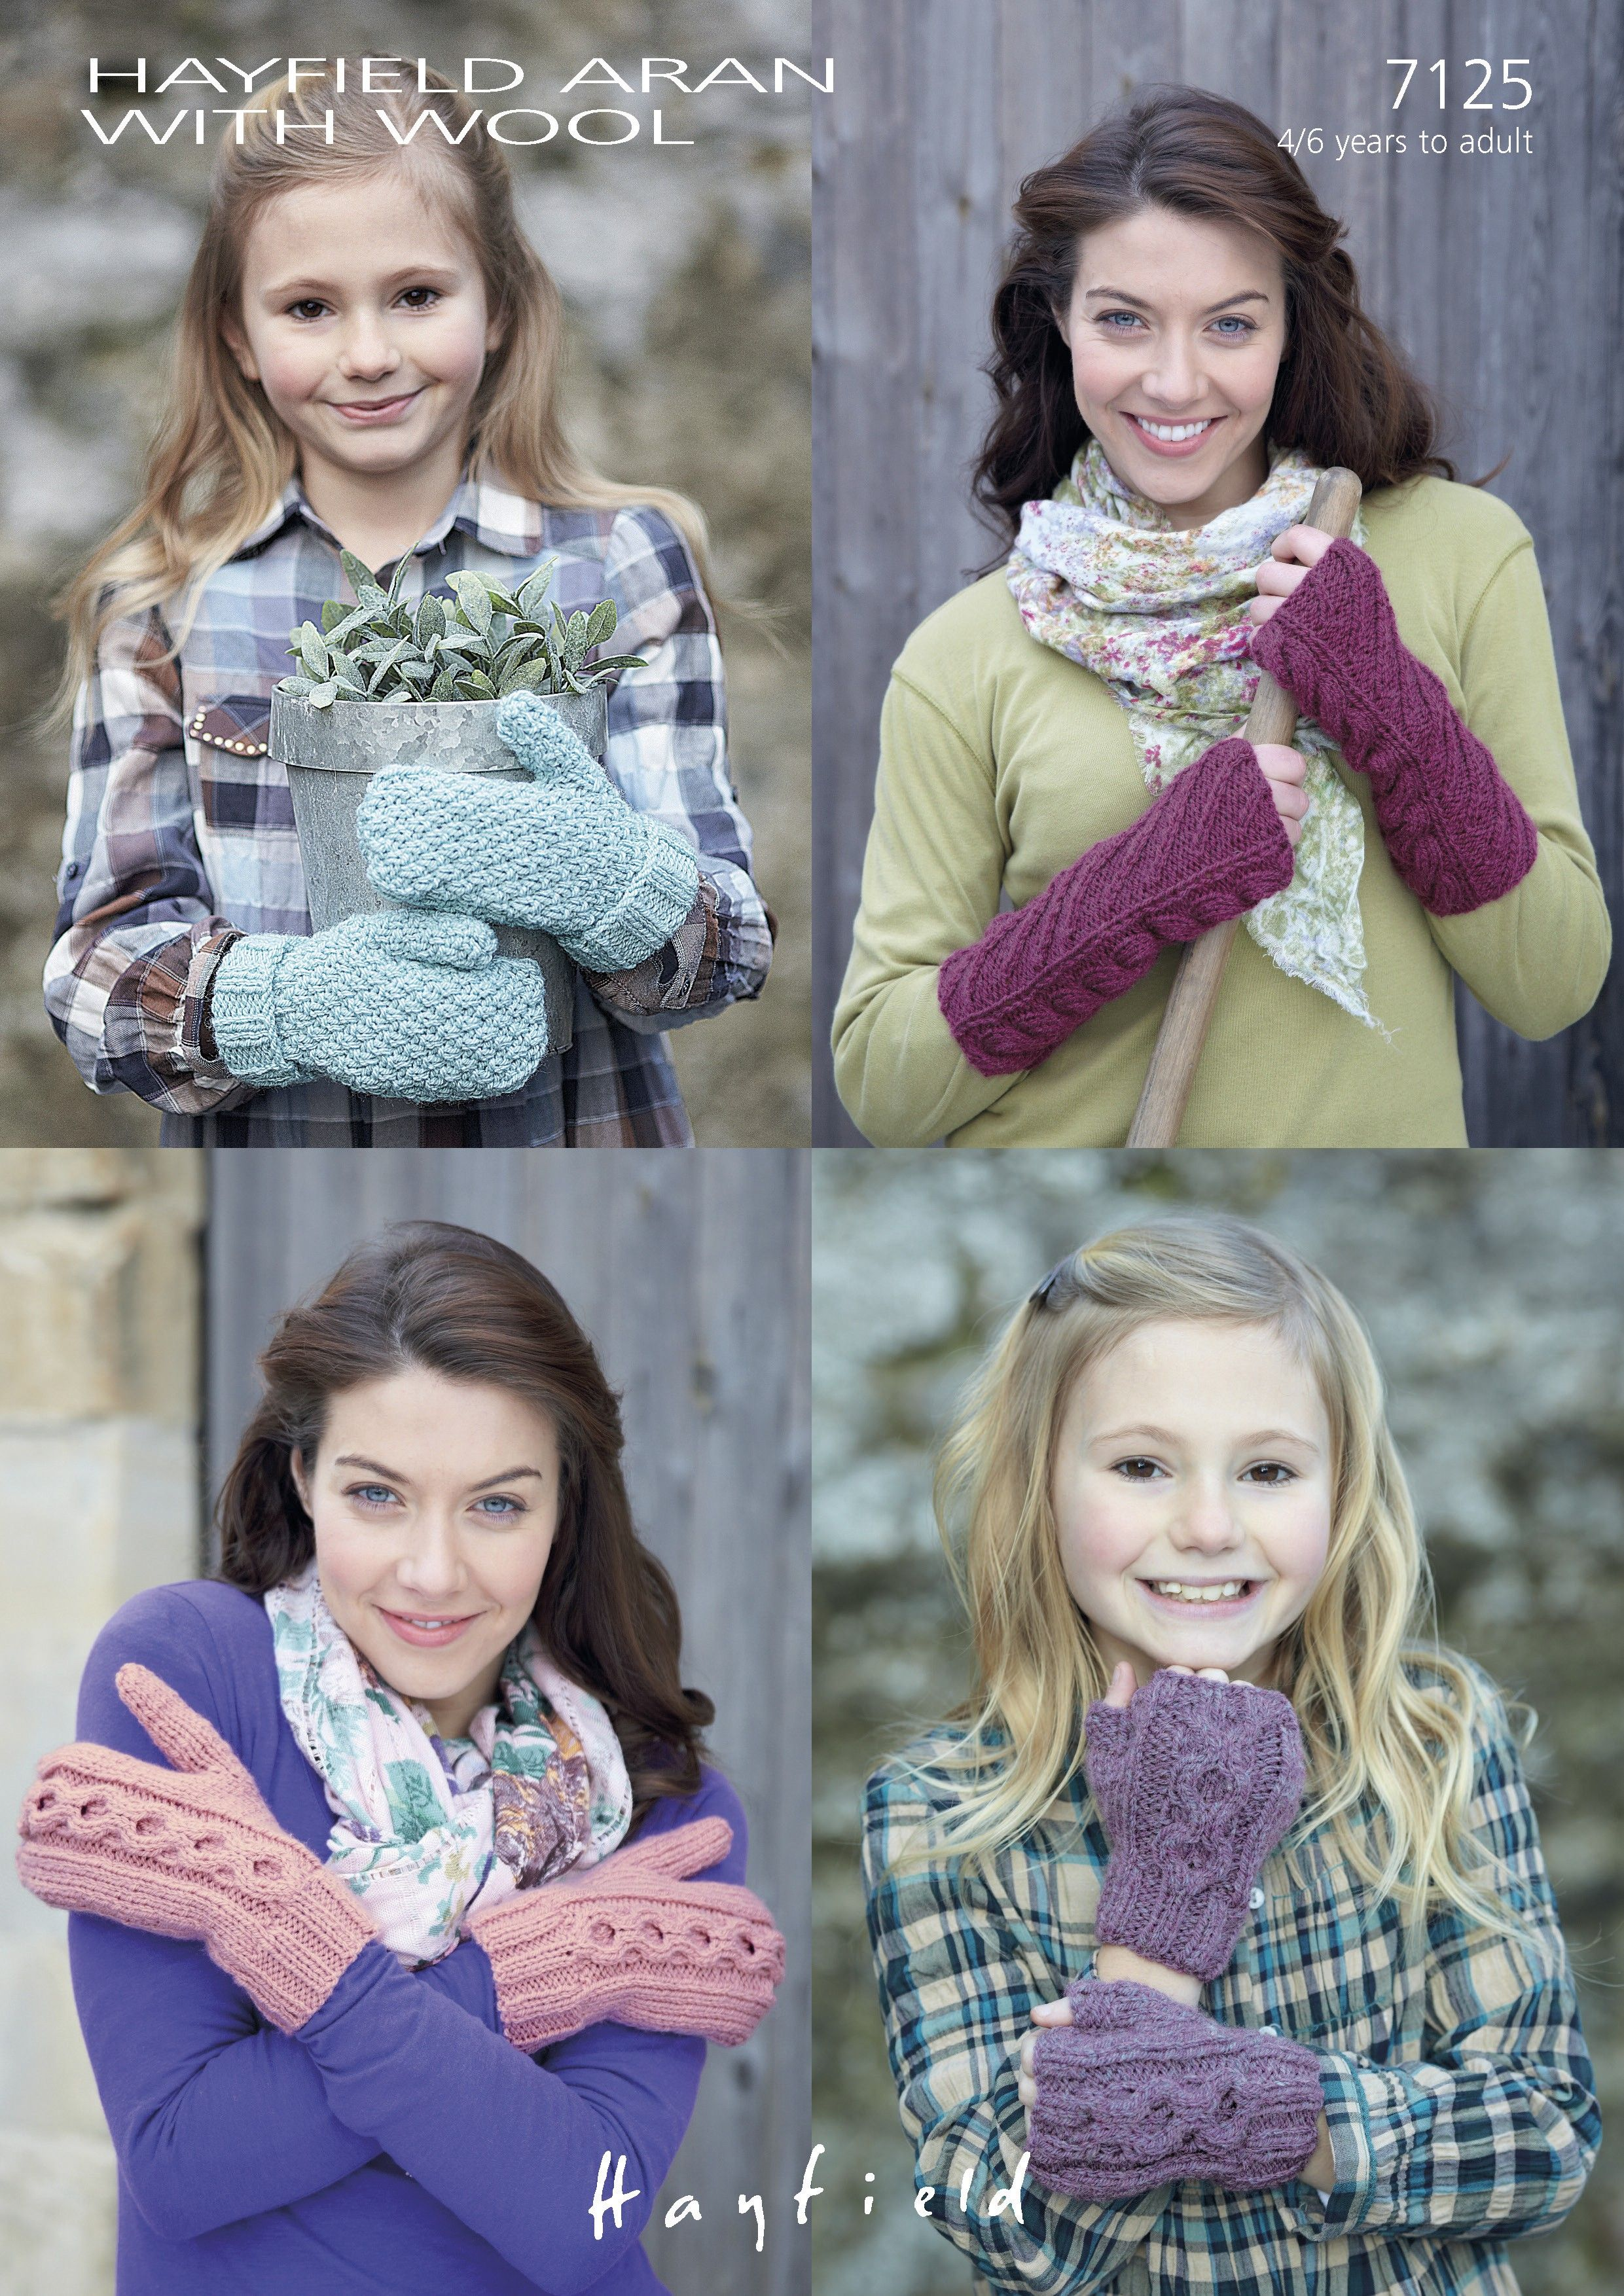 Moss-Stitch and Cabled Mittens, Cabled and Diagonal Pattern Wrist-warmers in Hayfield Aran With Wool (7125) | Aran Knitting Patterns | Knitting Patterns | Deramores